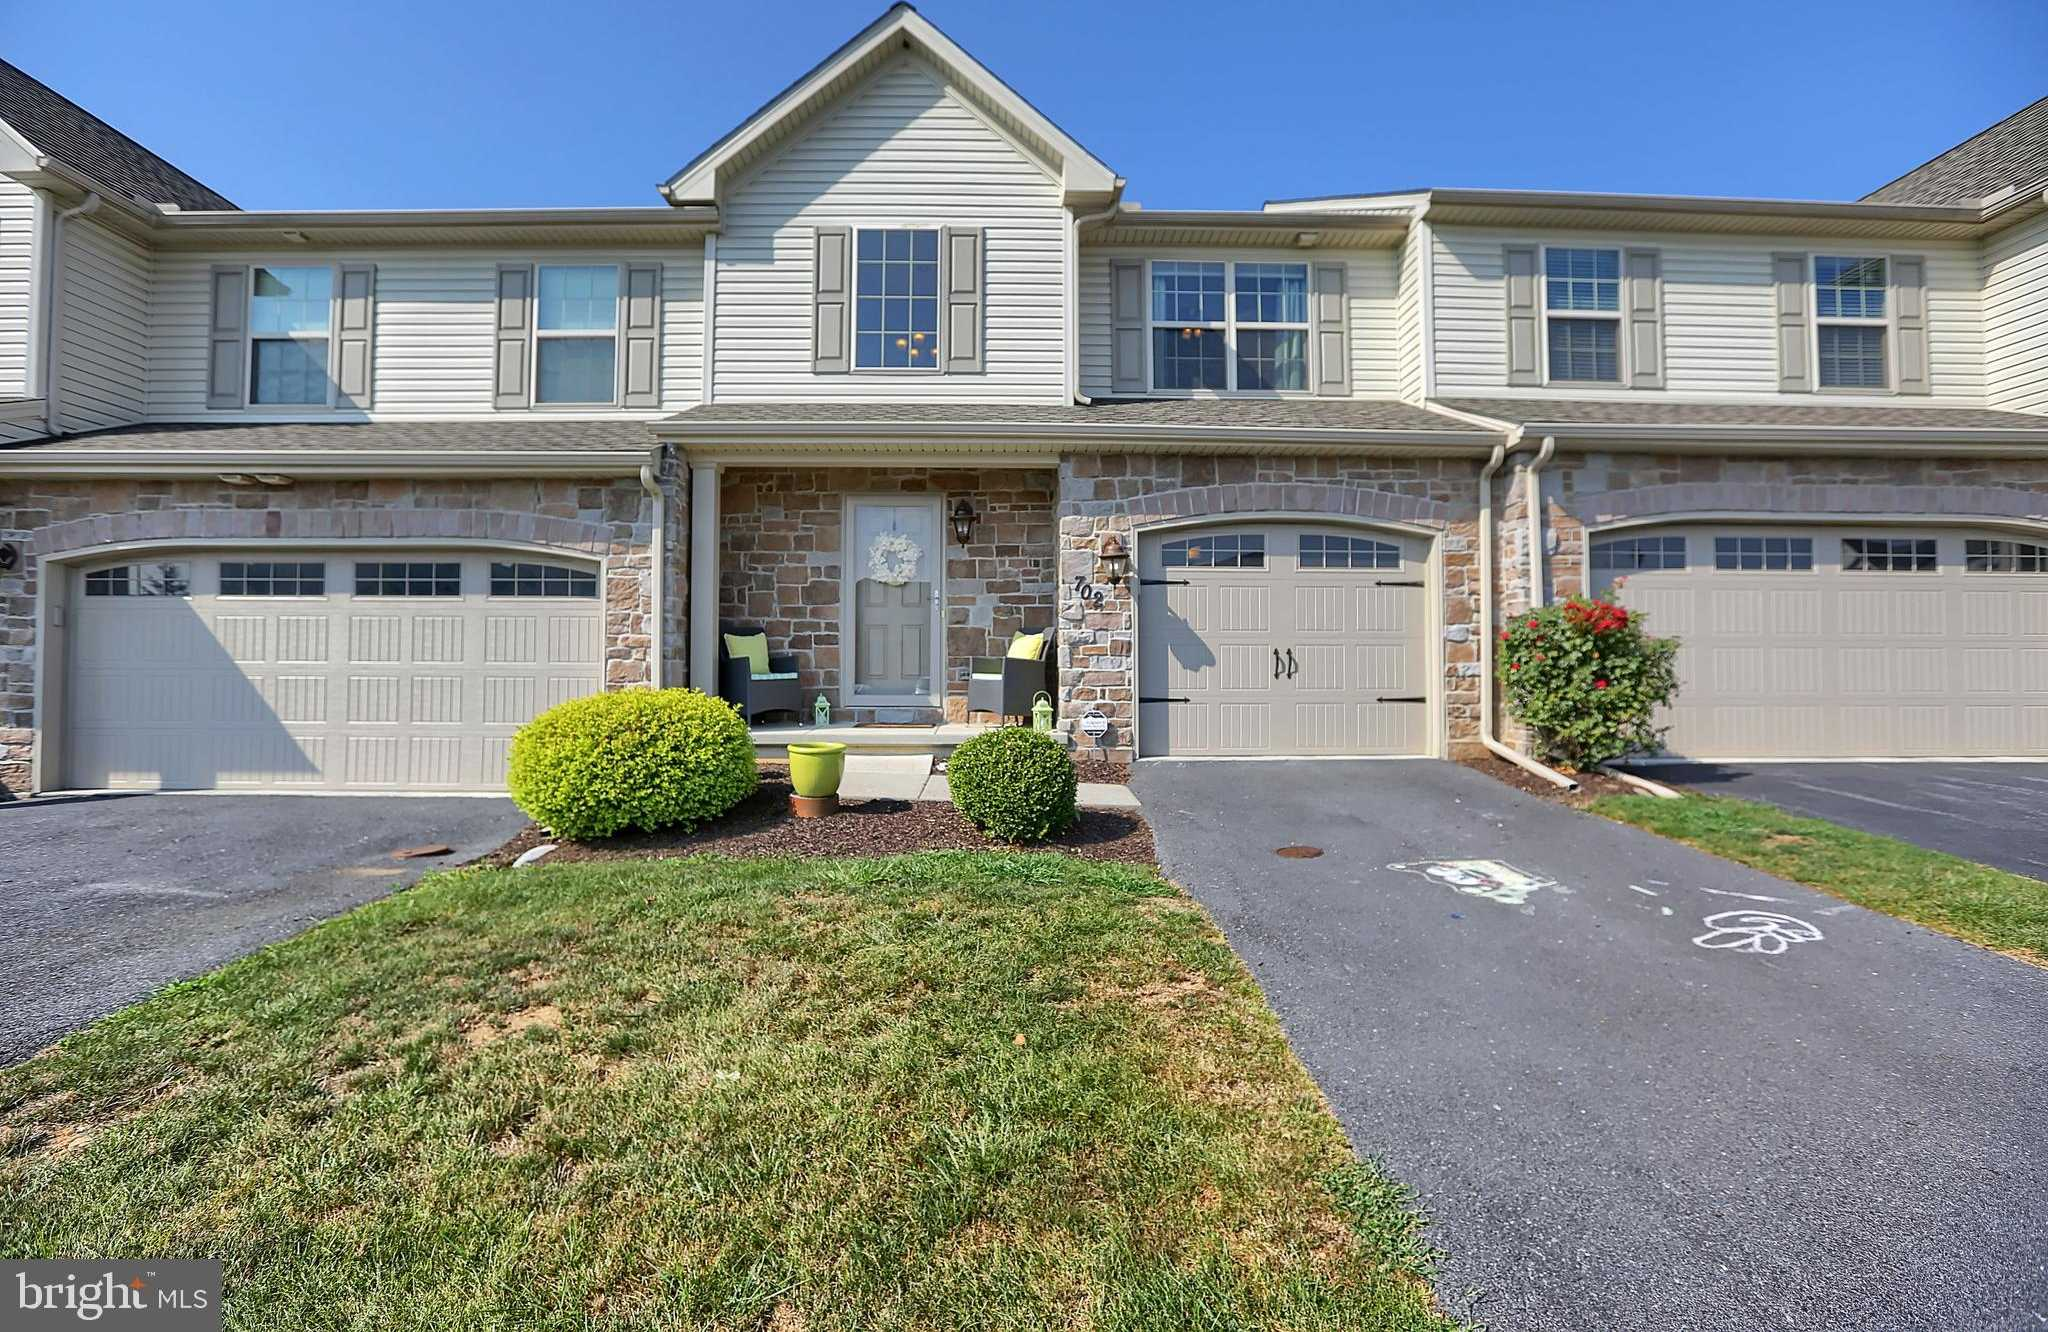 $240,000 - 3Br/3Ba -  for Sale in Winding Hills, Mechanicsburg